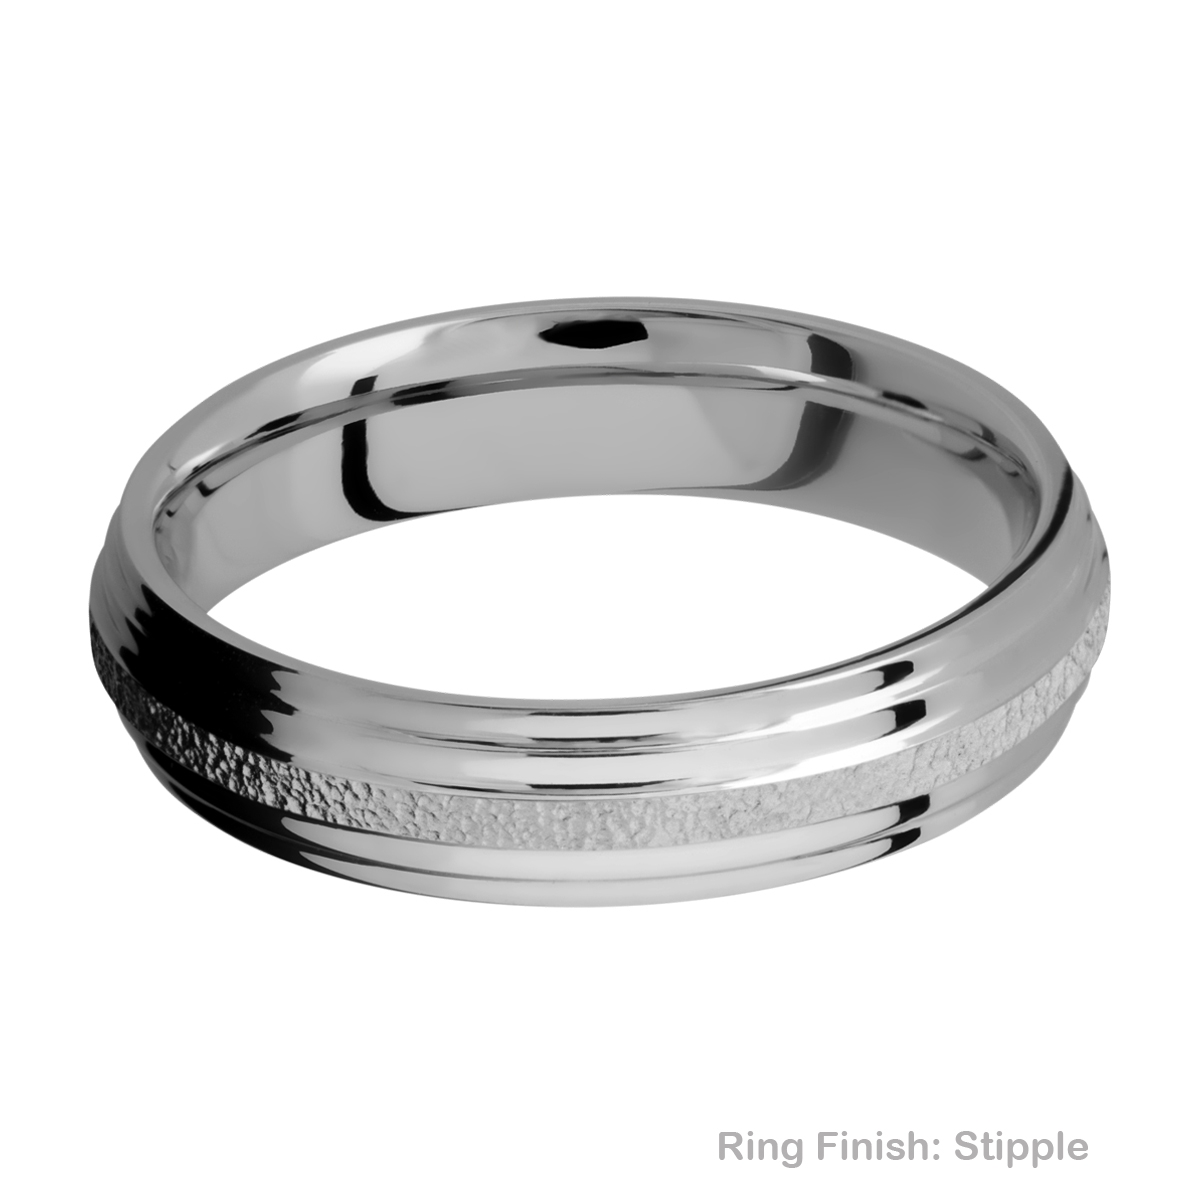 Lashbrook 5F2S Titanium Wedding Ring or Band Alternative View 16